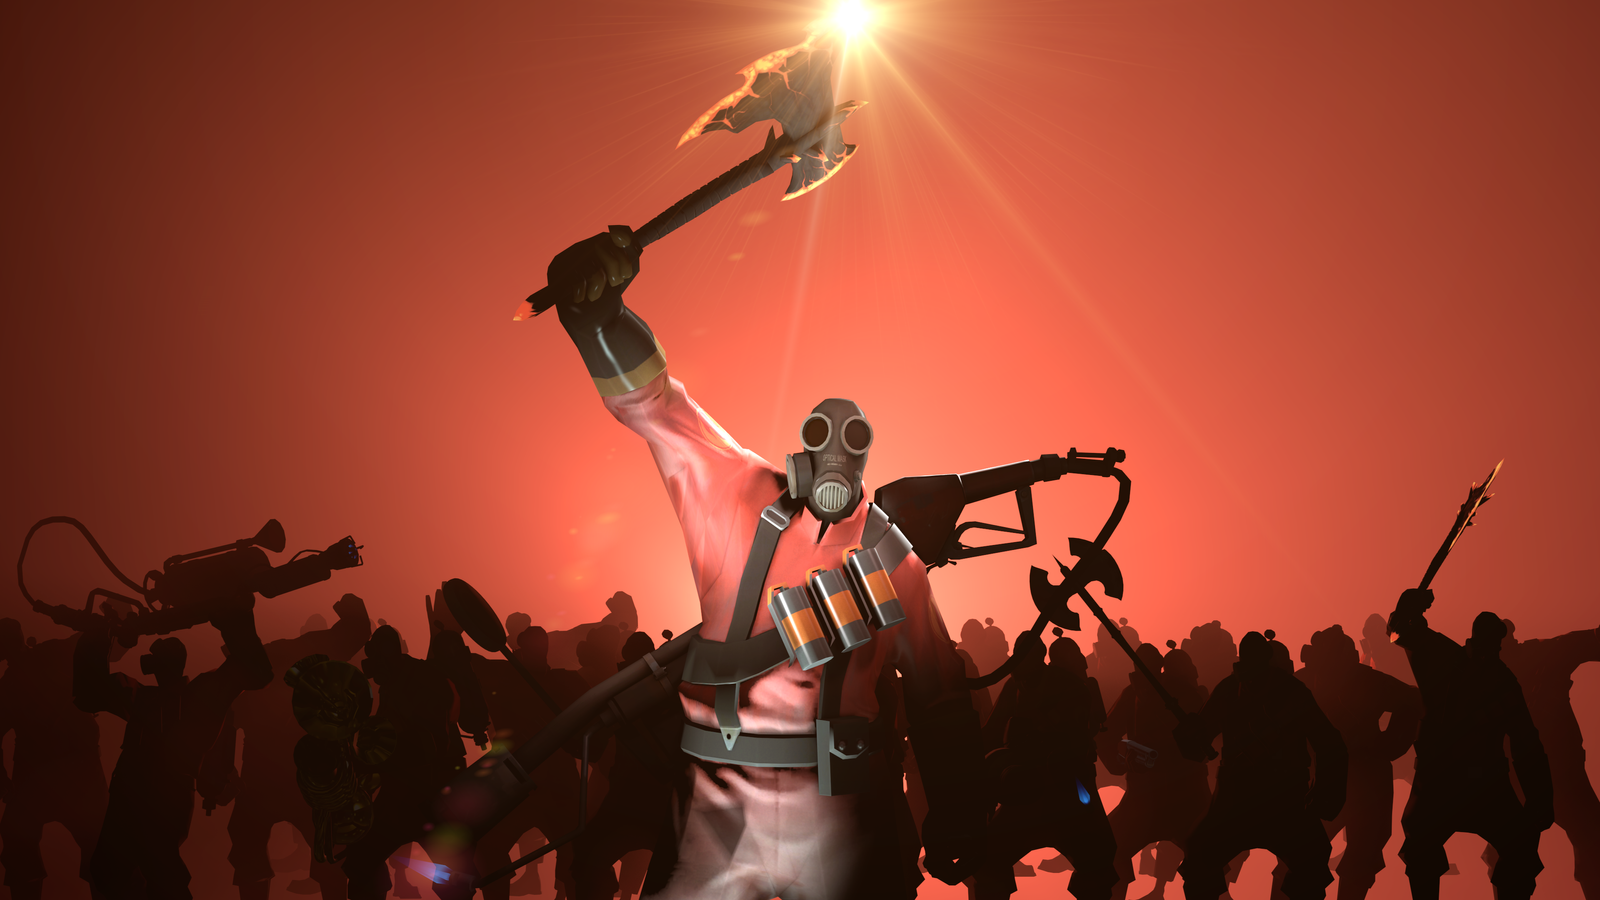 pyro_army_by_zeflyingmuppet-d6m5exf.png